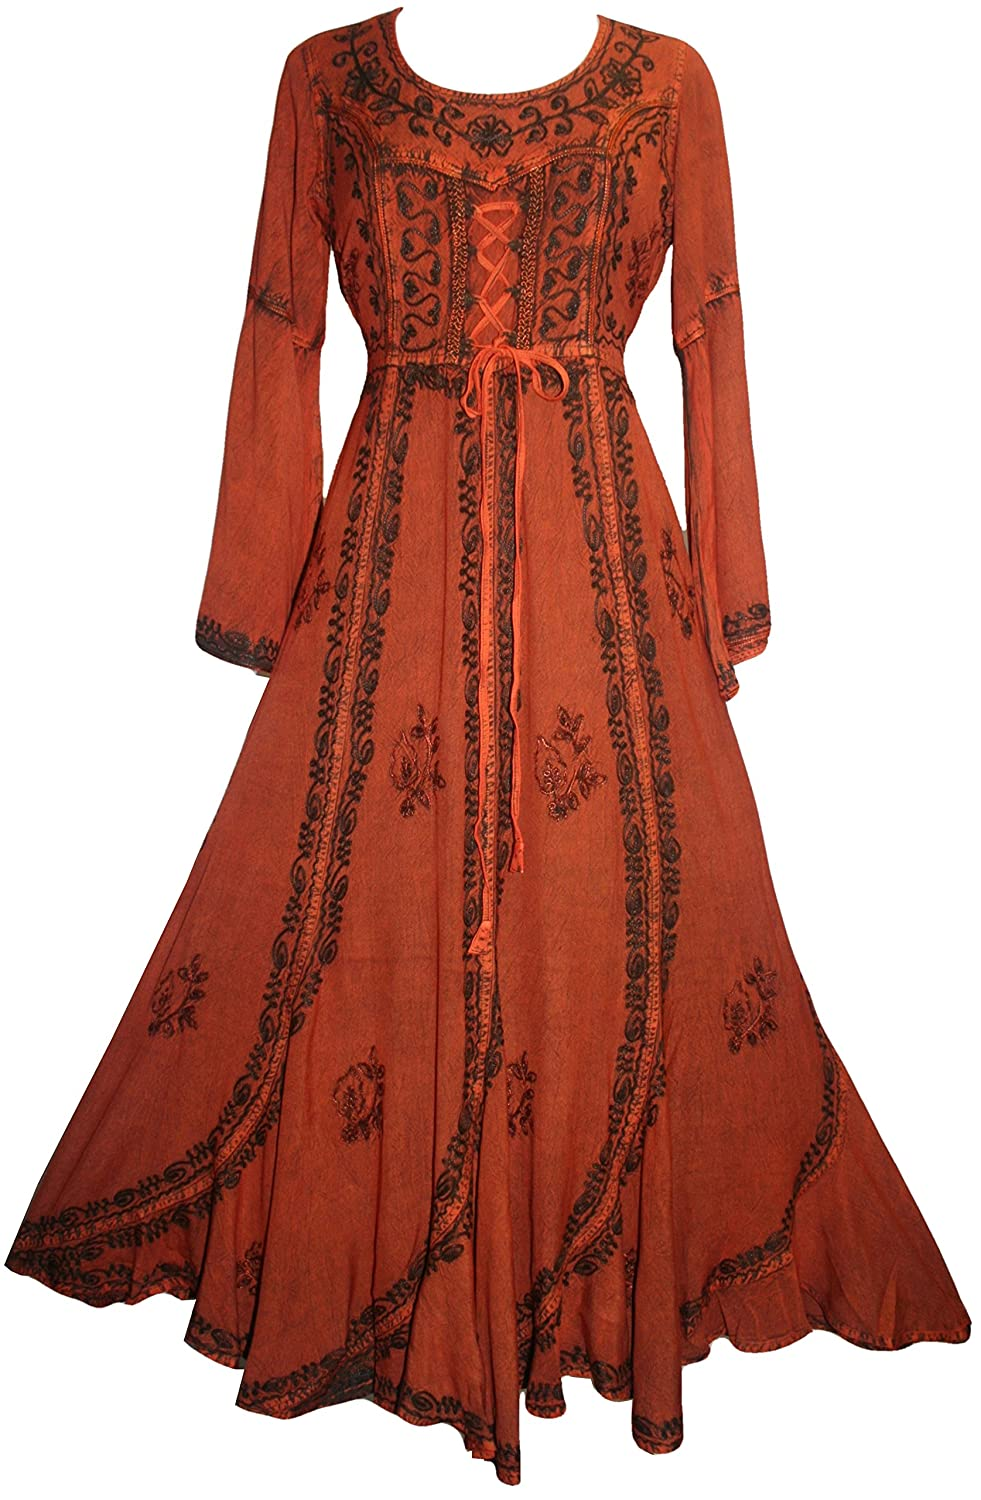 c2ddf2c02d Stunning Medieval Gypsy Bell Sleeve Long Scalloped Dress. Detailed floral  dense thick embroidery running vertically. Scooped neck with detailed  embroidery.